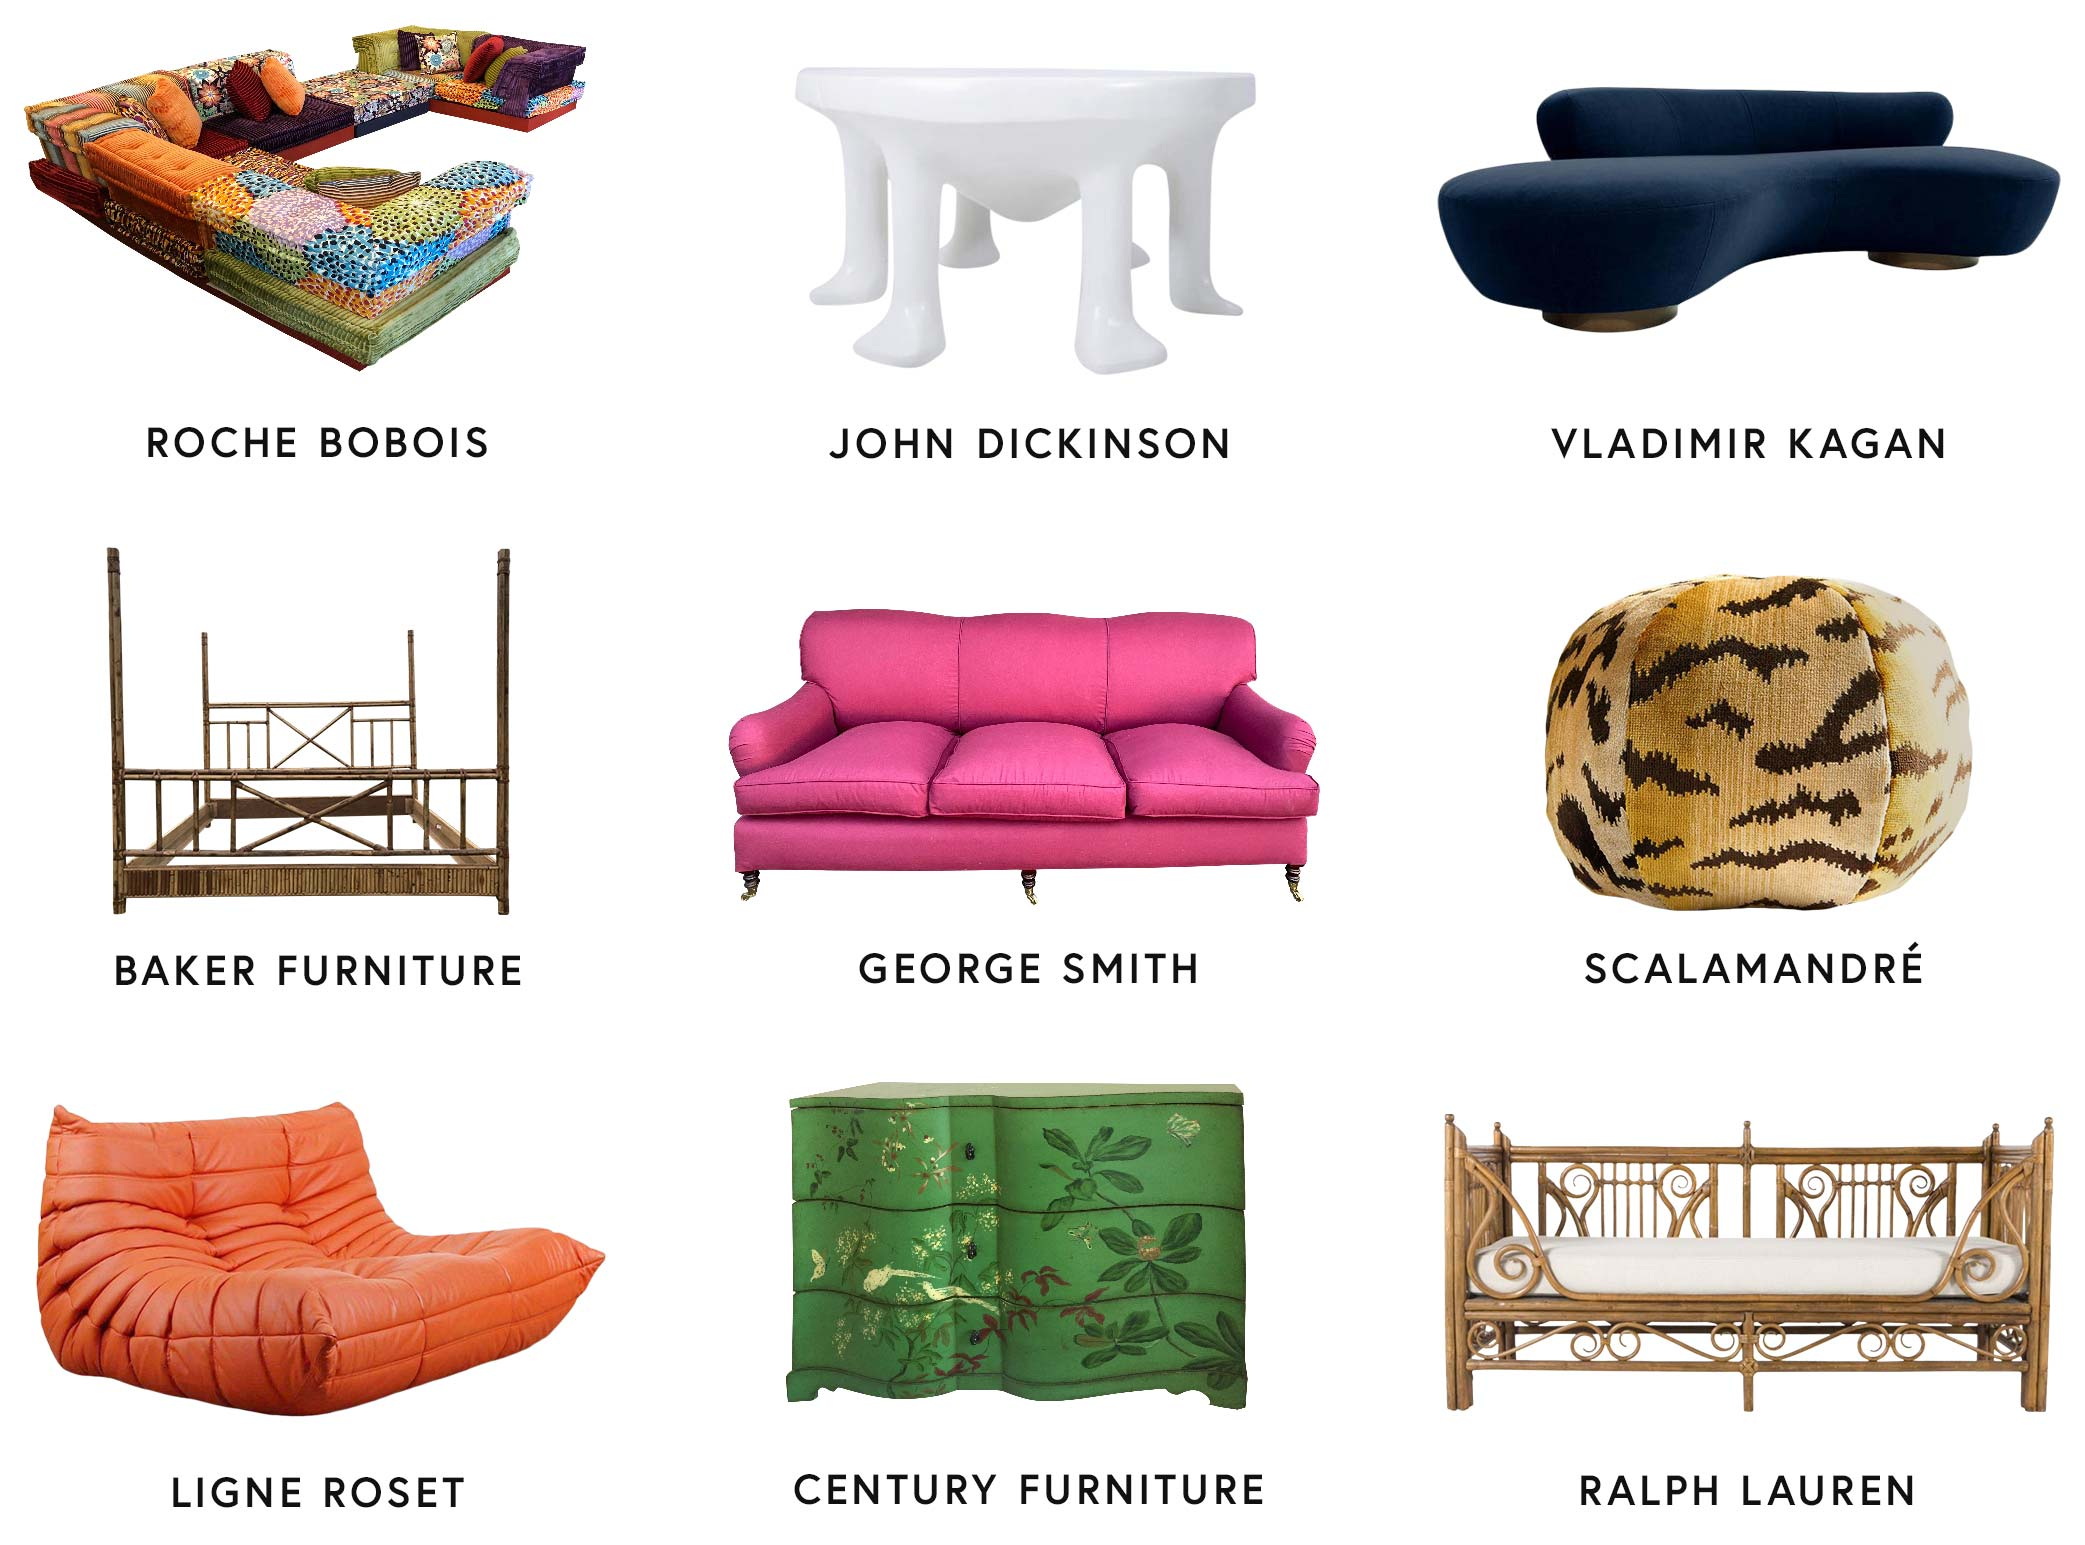 Three by three grid featuring furniture and corresponding brand names